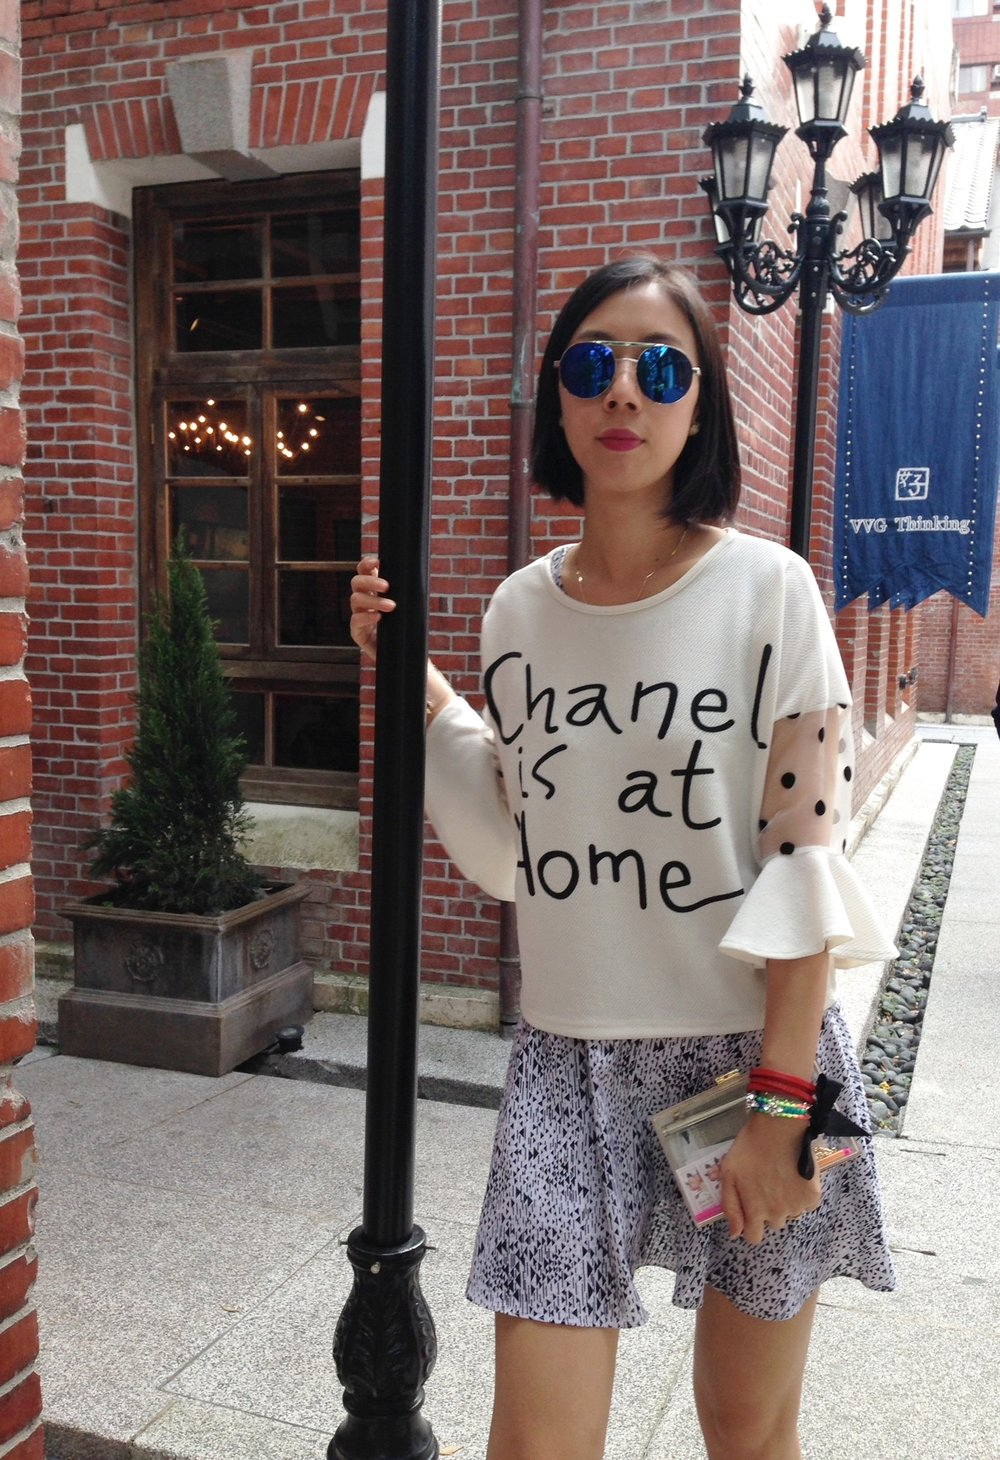 179cmandup - Chanel is not at home white top